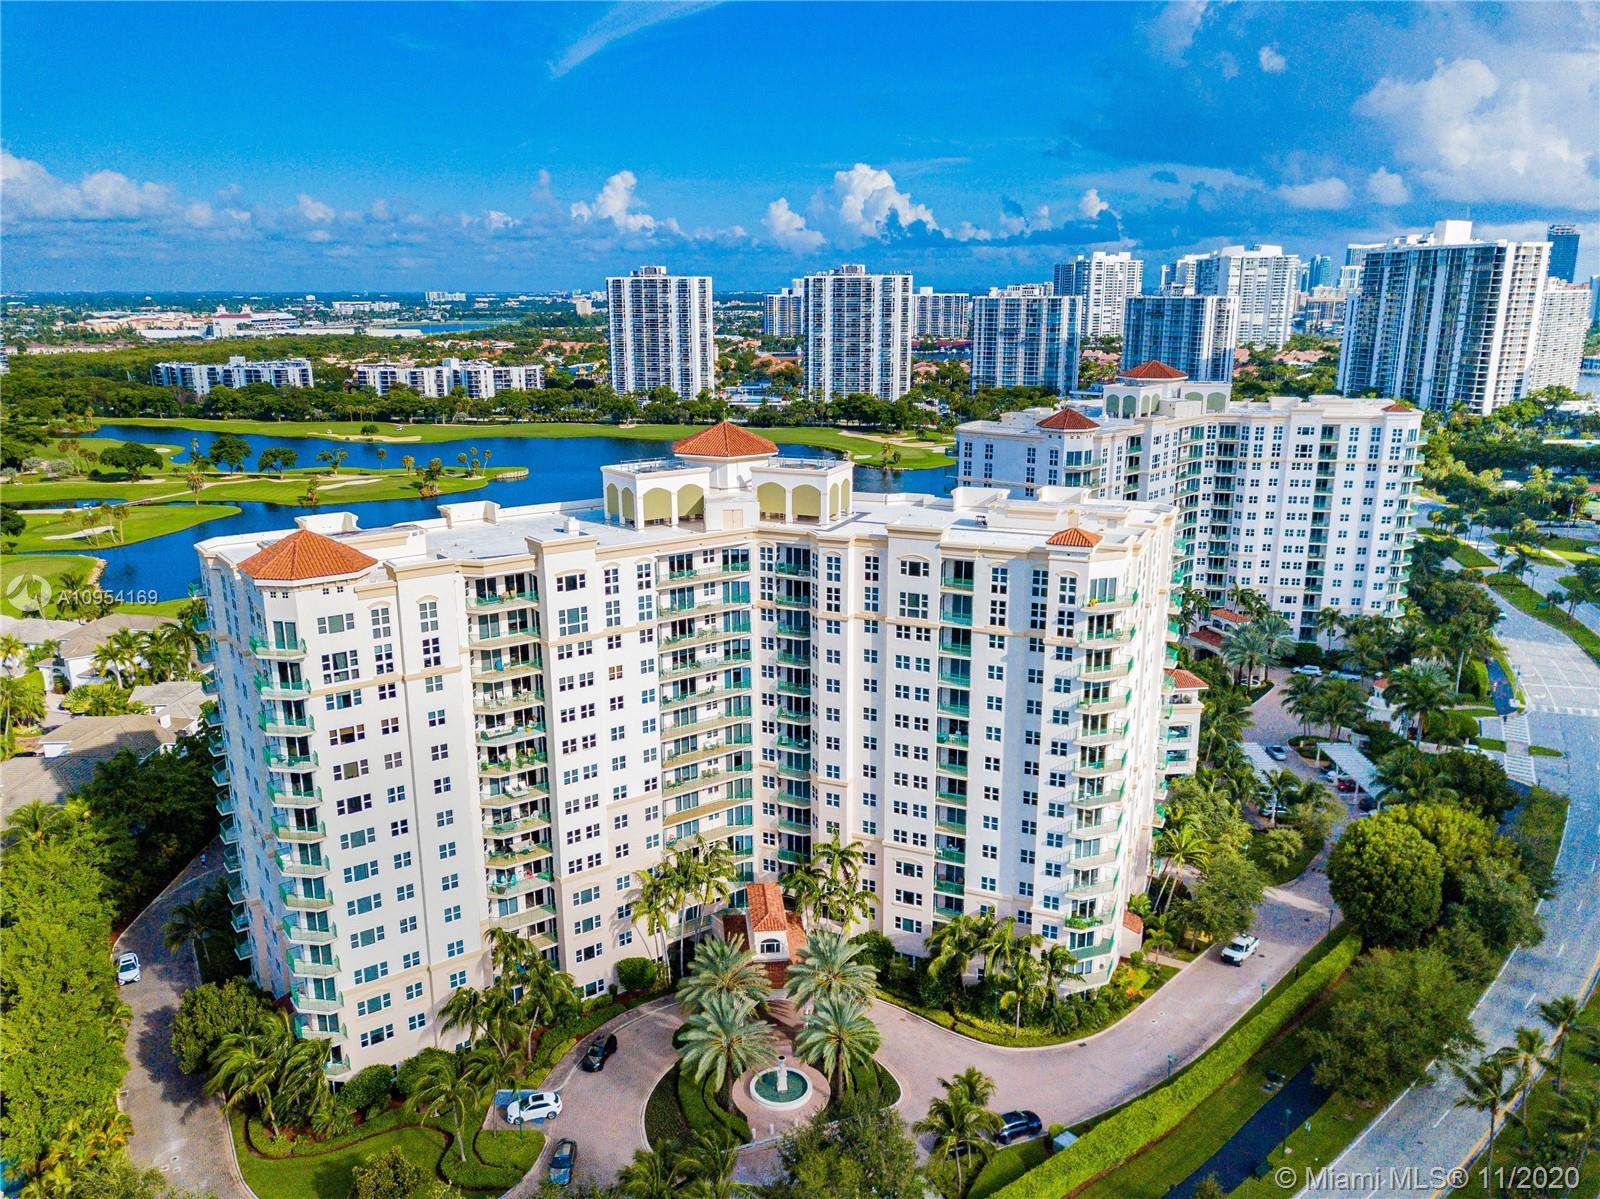 Gorgeous 3/3 village, corner unit located in the modern city of Aventura on the famed Turnberry golf